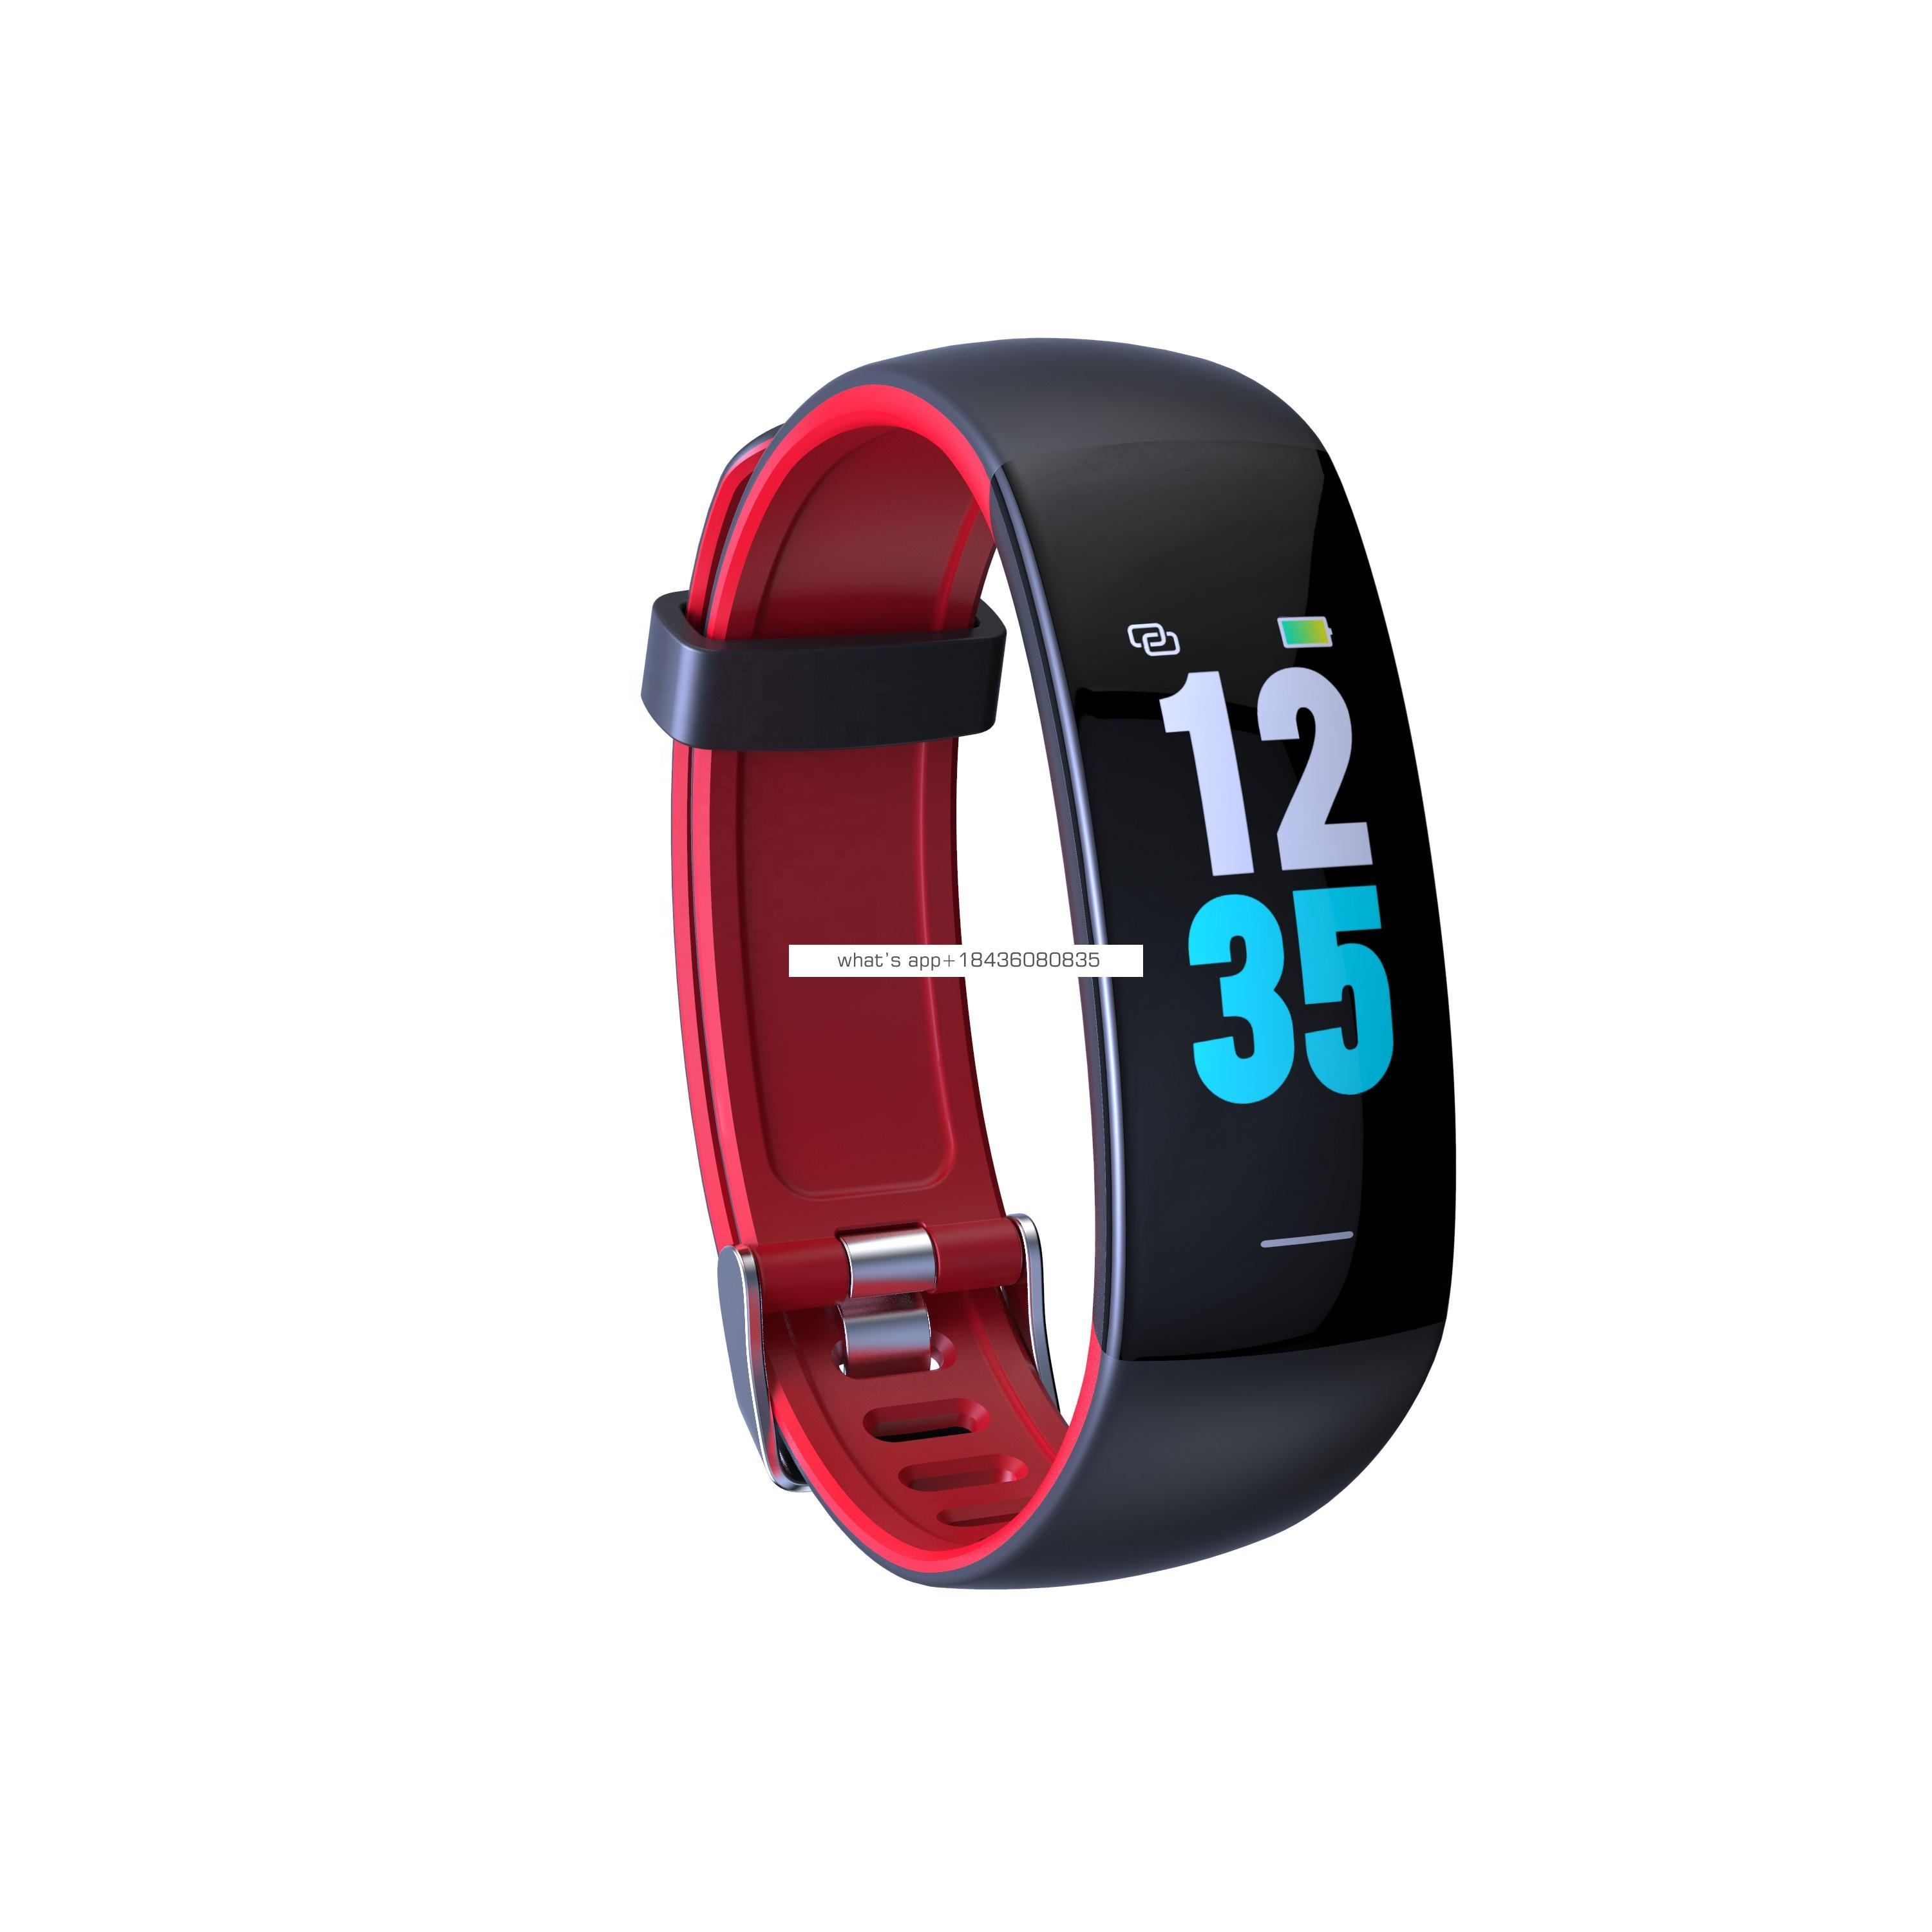 Most popular OEM sport modes pedometer fitbit smart health watch branded IP68 waterproof for swimming shower